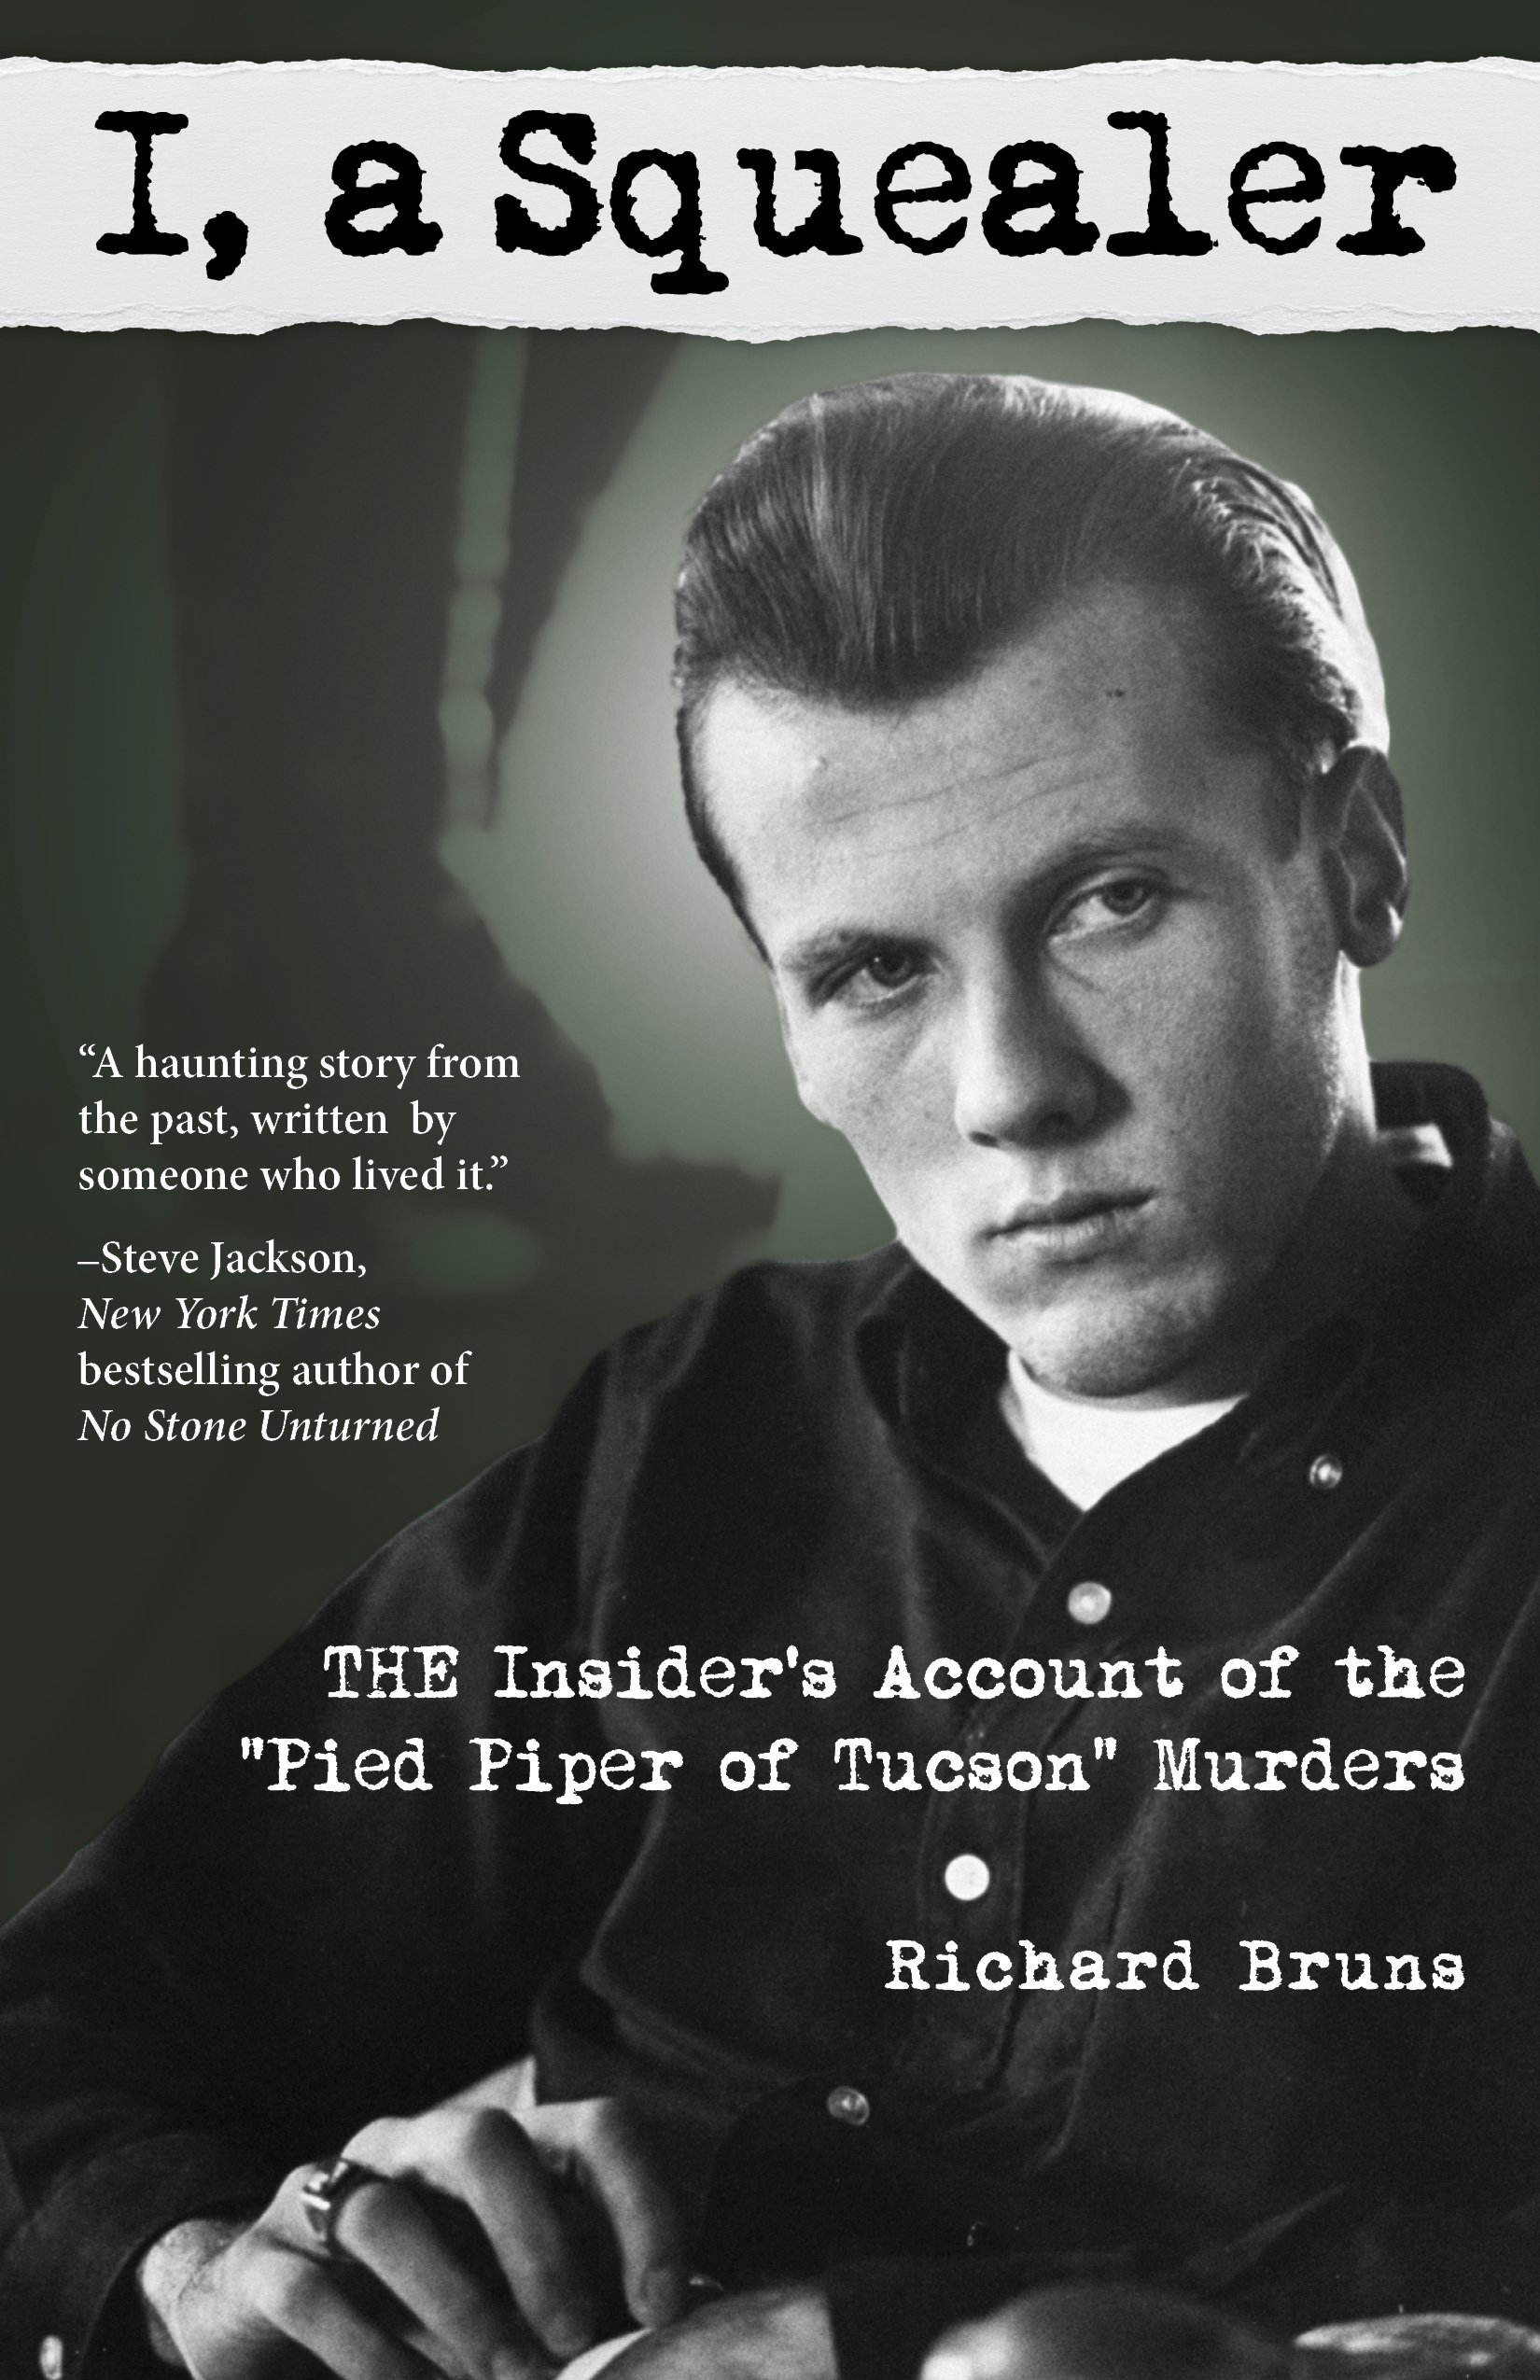 I, a Squealer: The Insider's Account of the Pied Piper of Tucson Murders